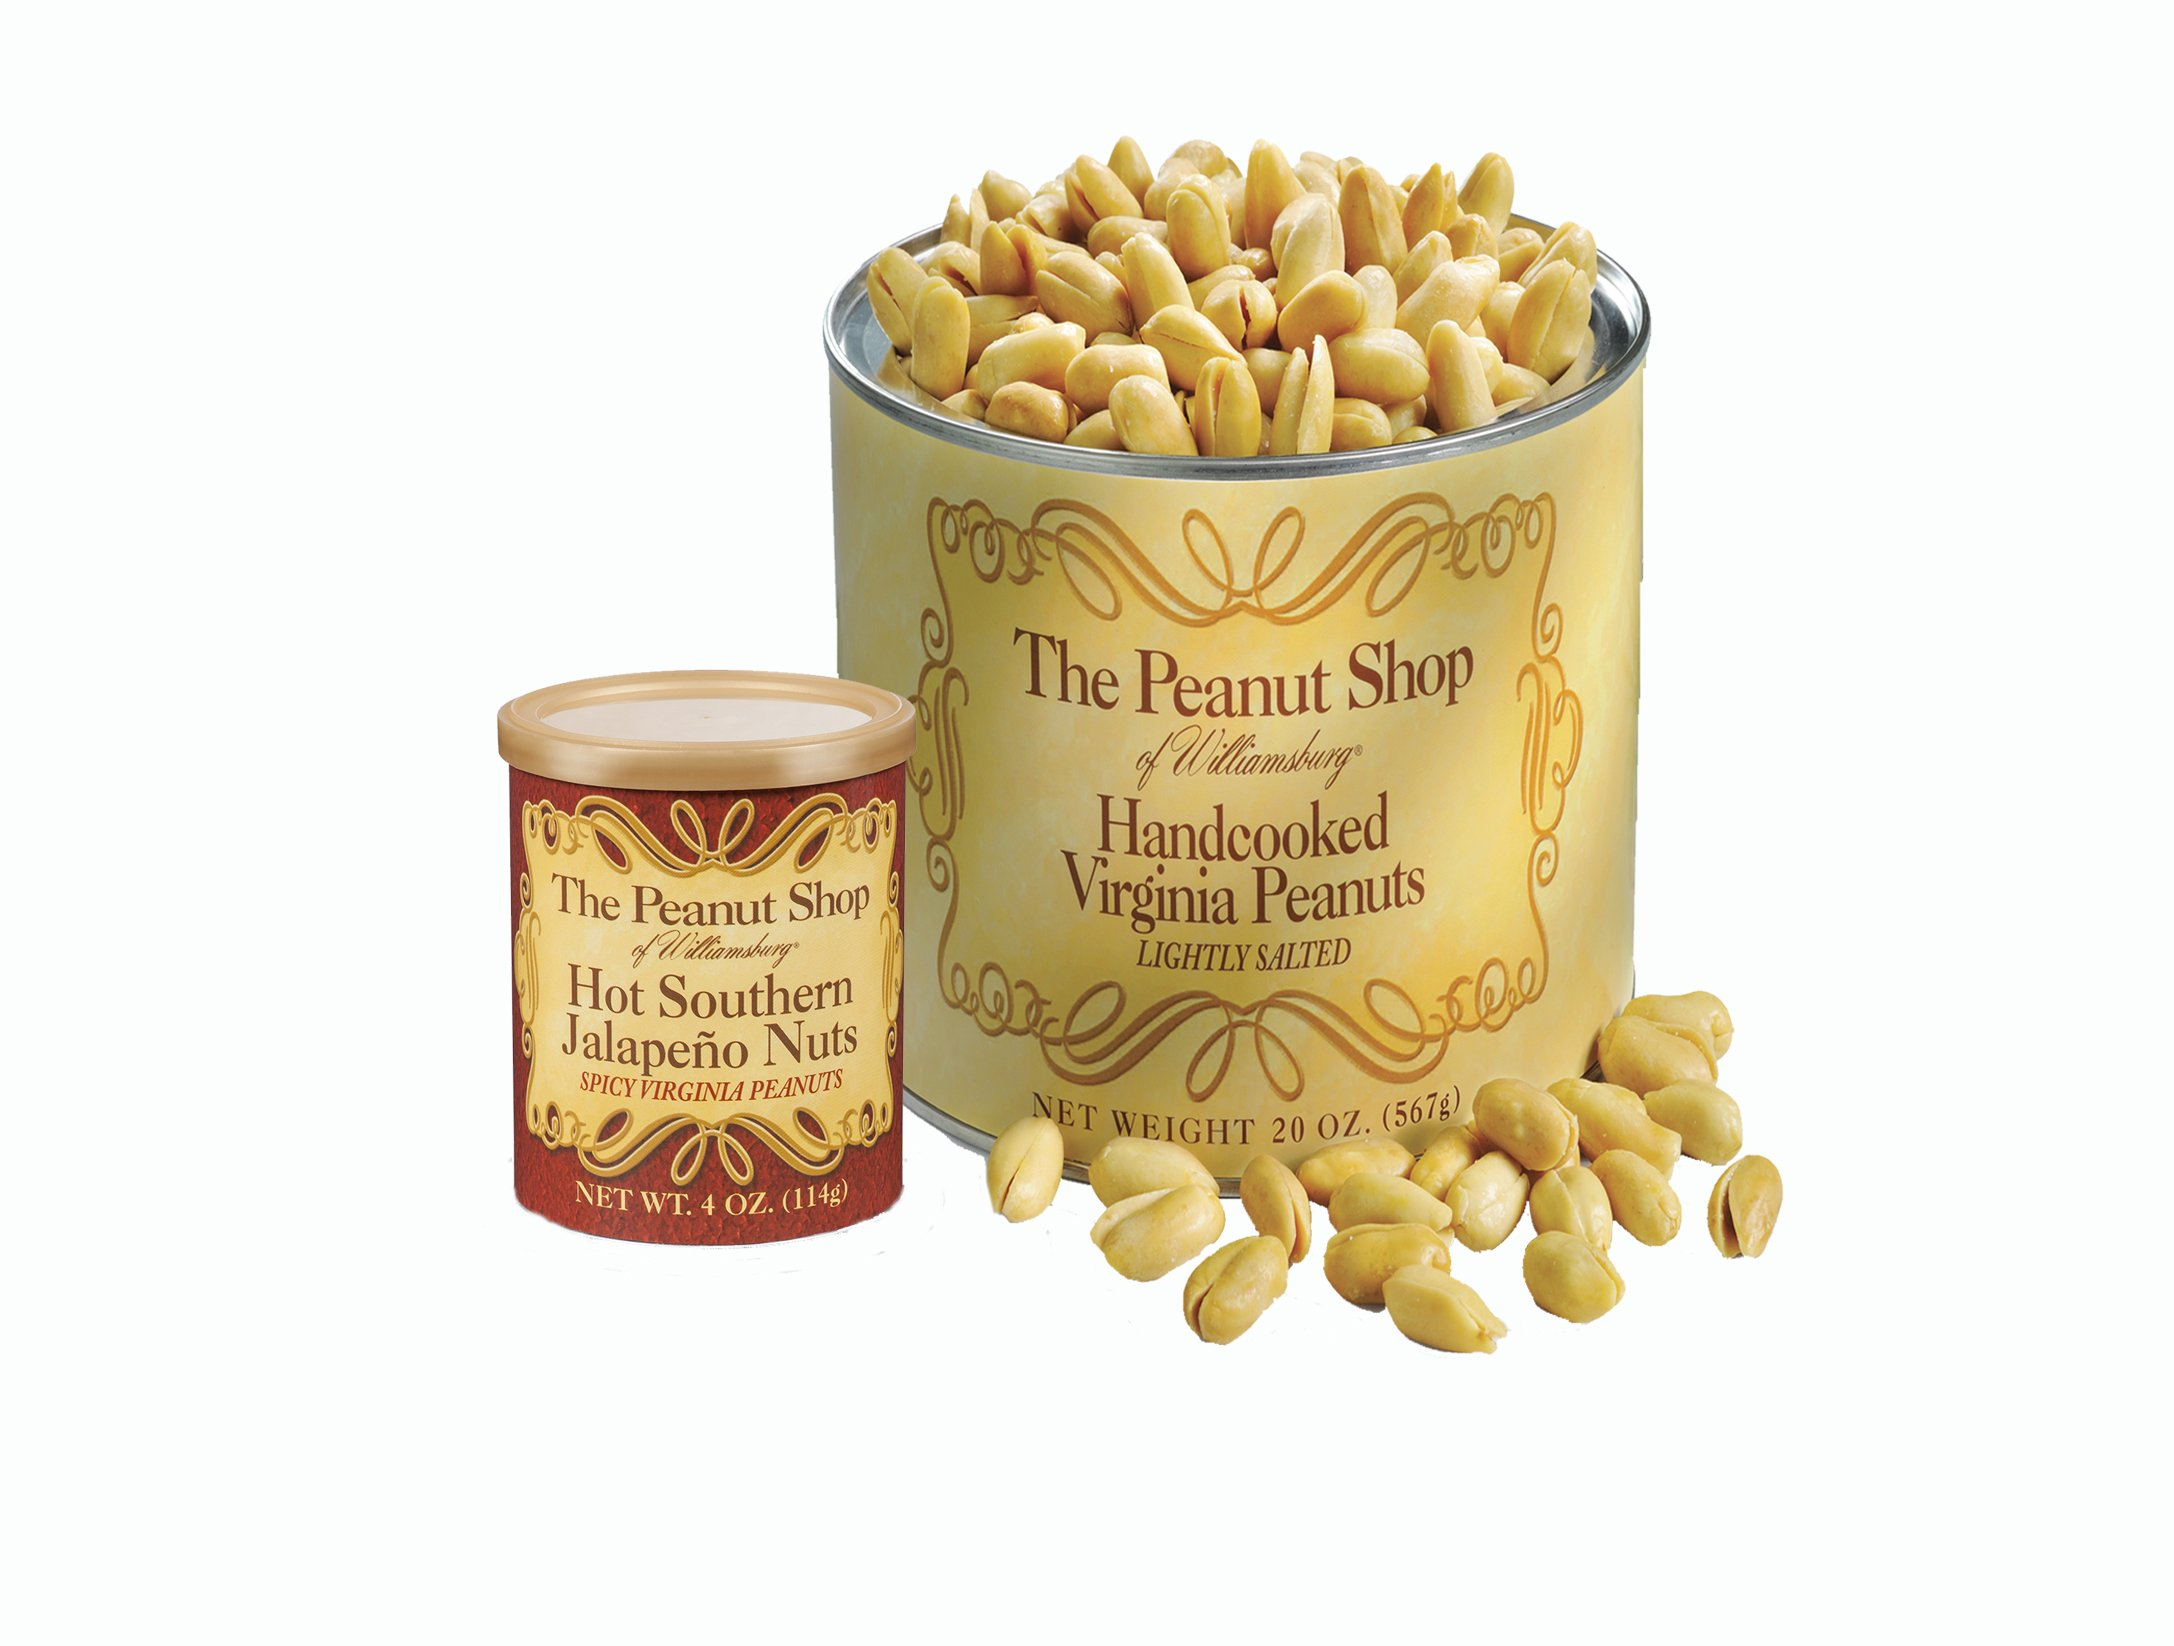 The Peanut Shop of Williamsburg Handcooked Virginia Peanuts, Lightly Salted, 20 Ounce & Hot Southern Jalapeno, 4 Ounce